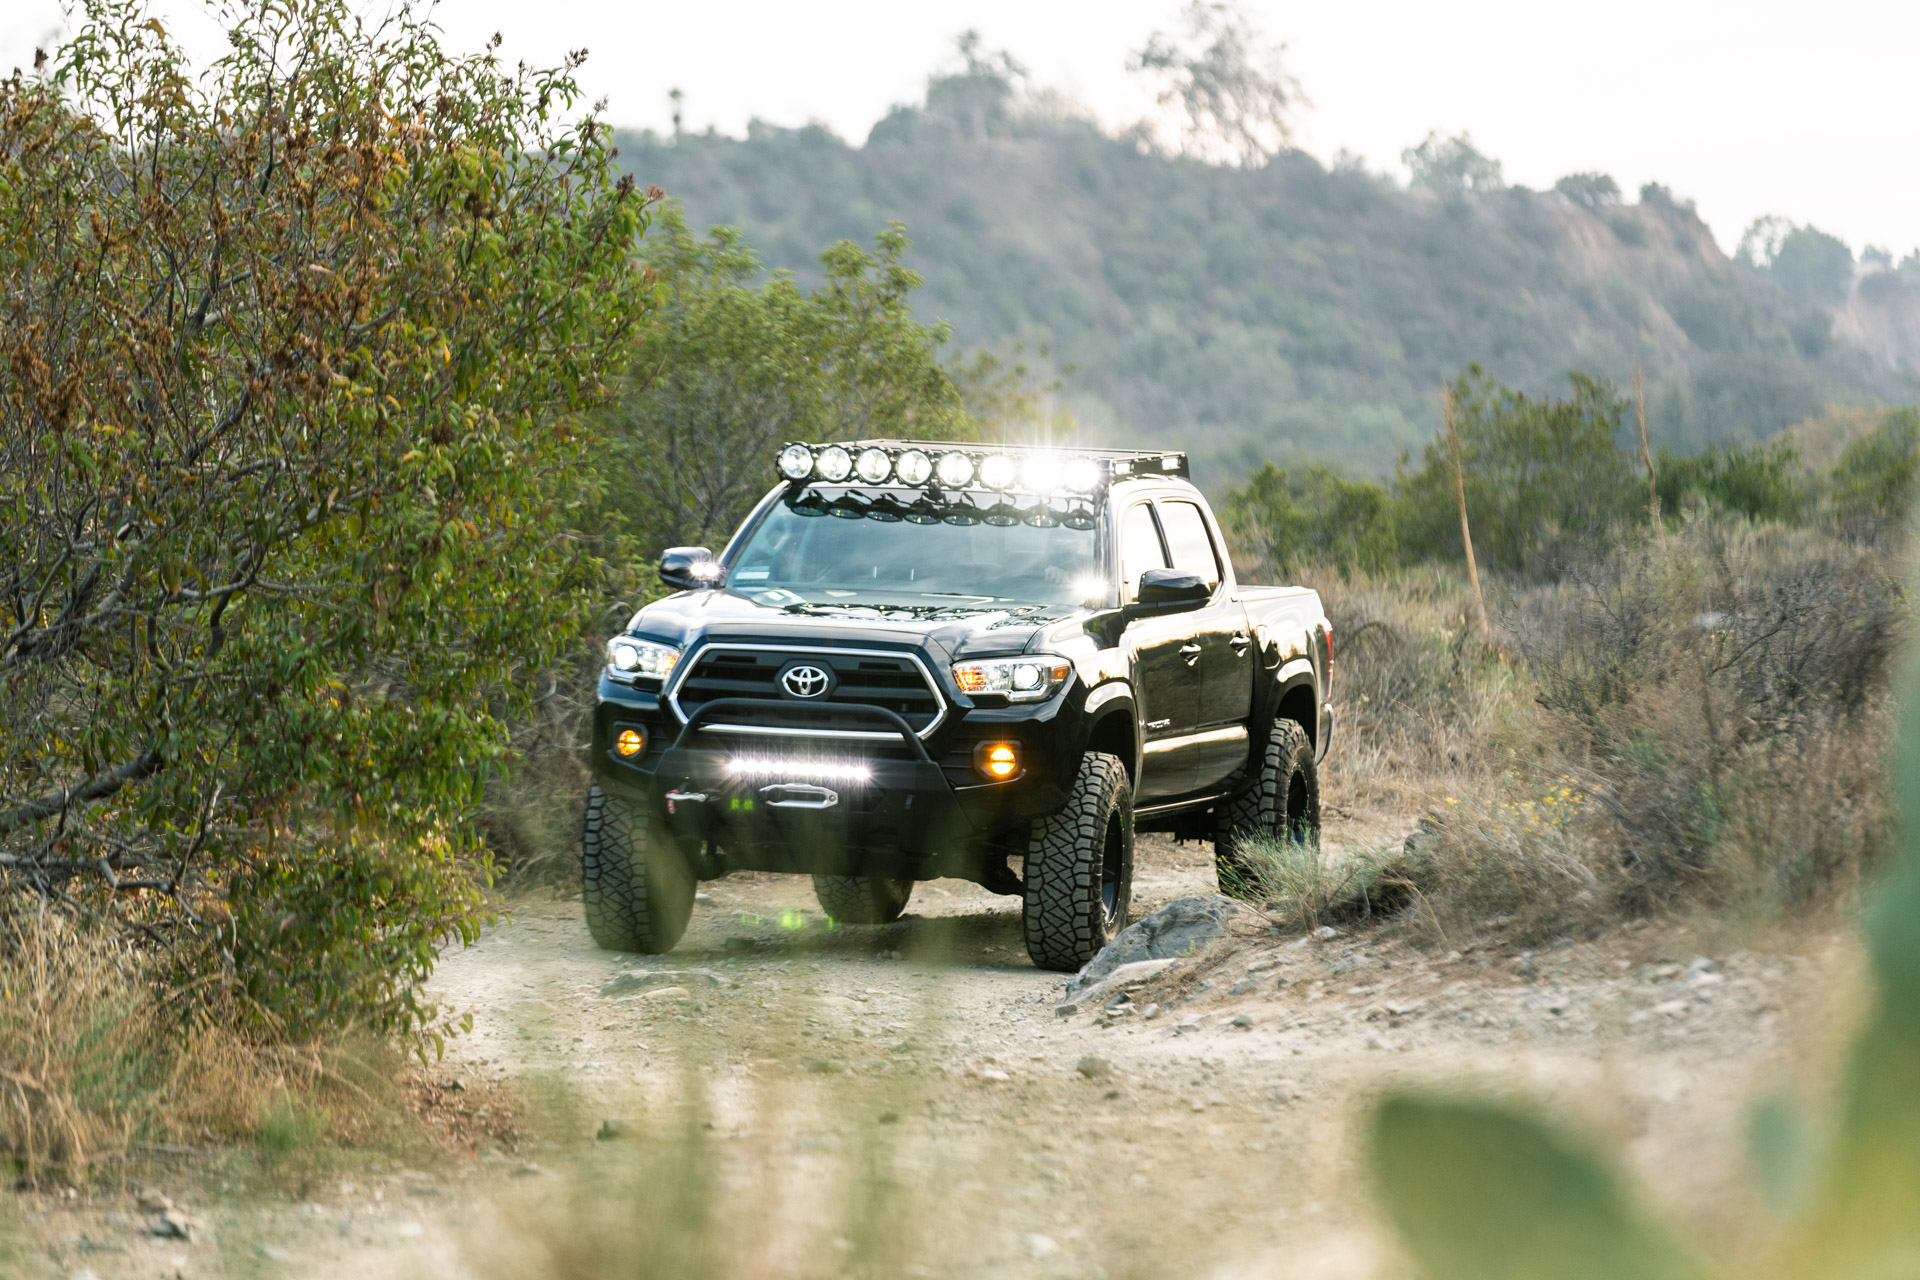 Black KC Toyota Tacoma with Roof Rack & Integrated Lighting - Image #05